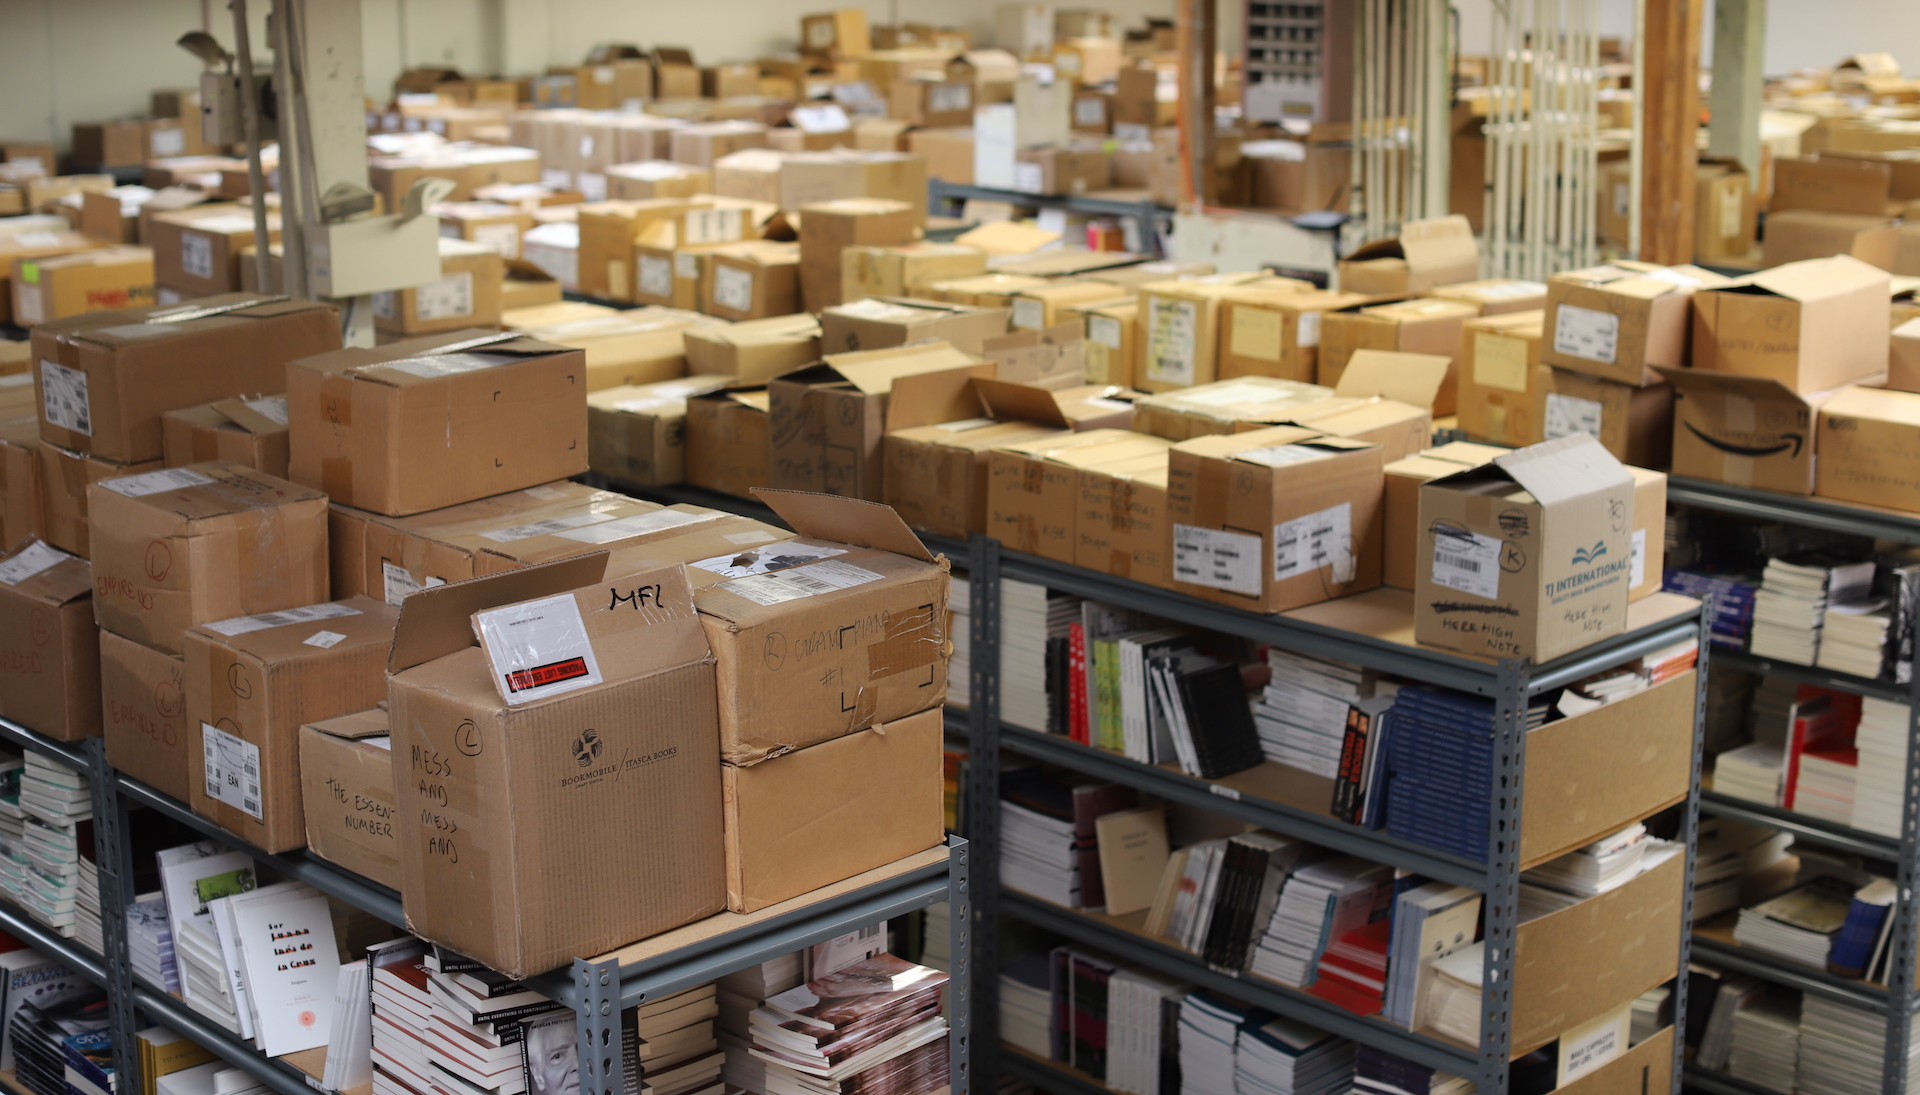 Small Press Distribution currently warehouses some 350,000 books.